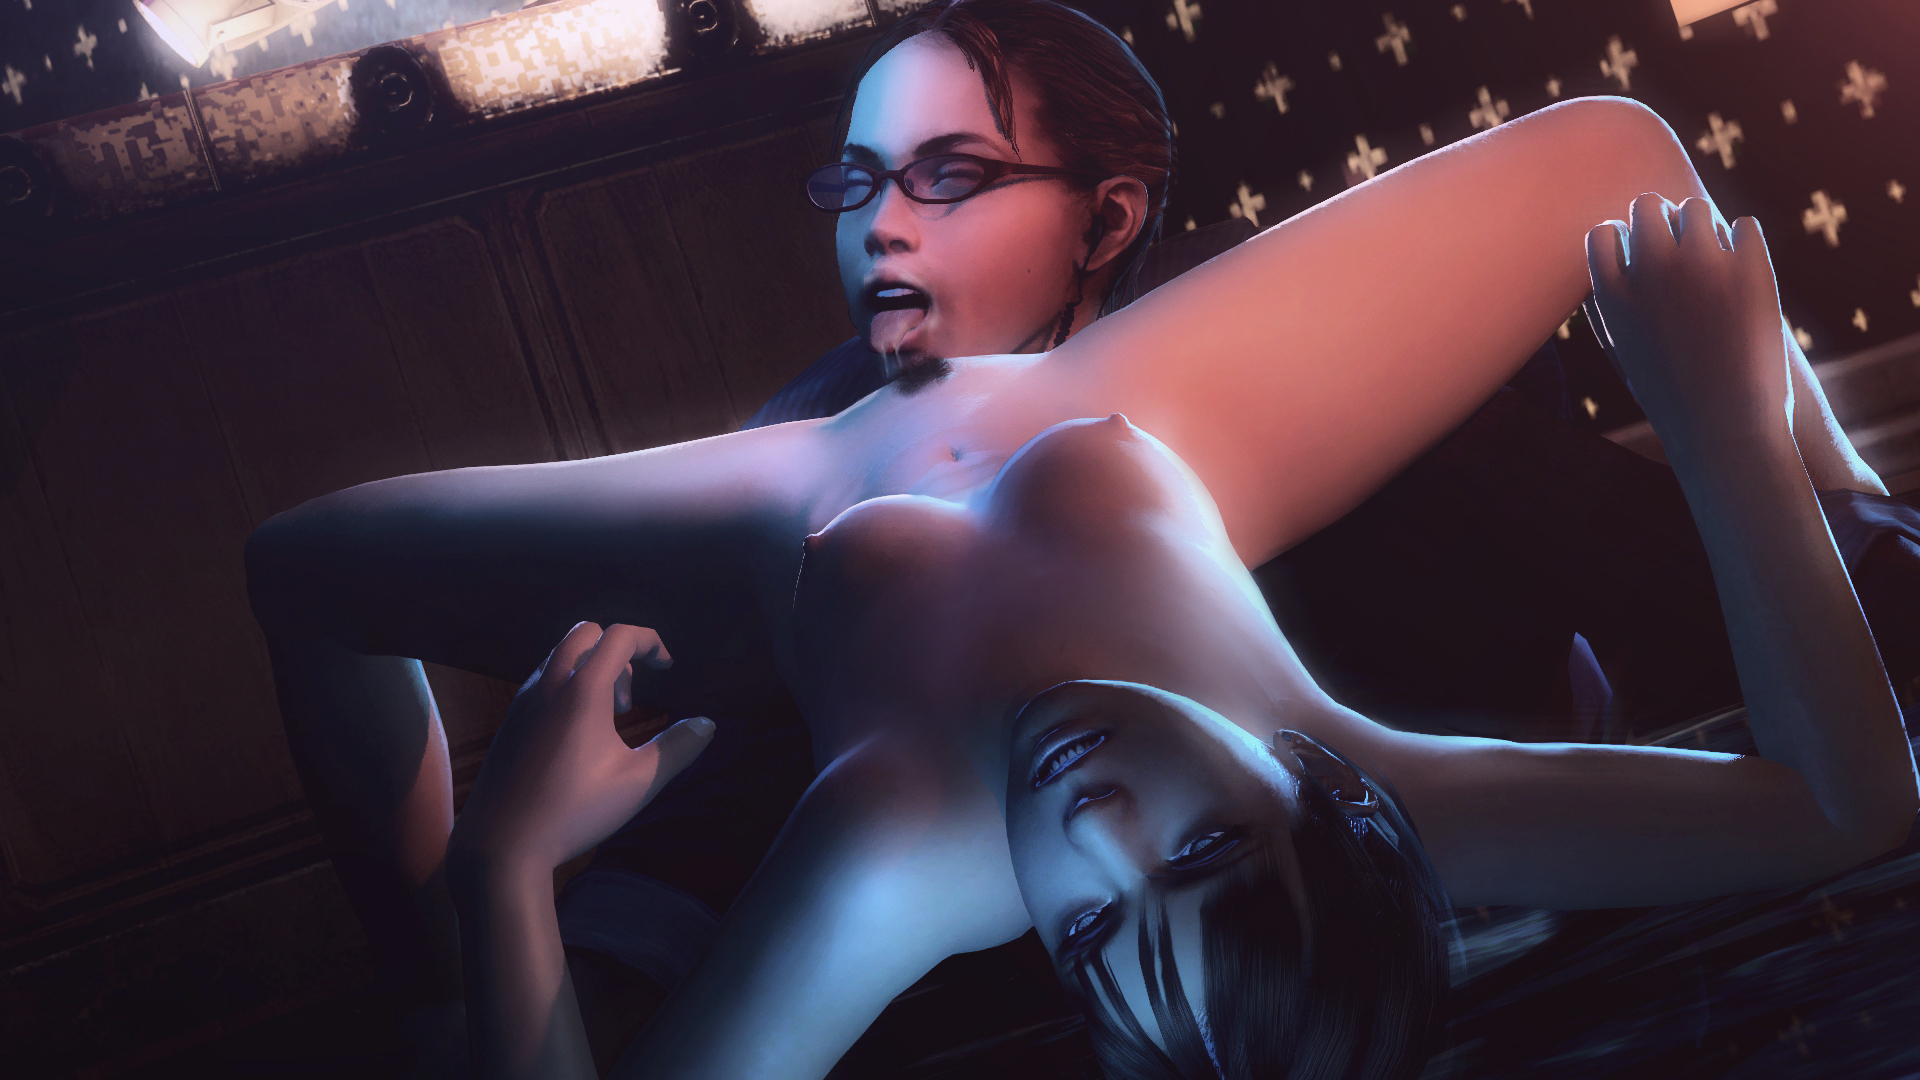 Hentai resident evil wallpapers porncraft images